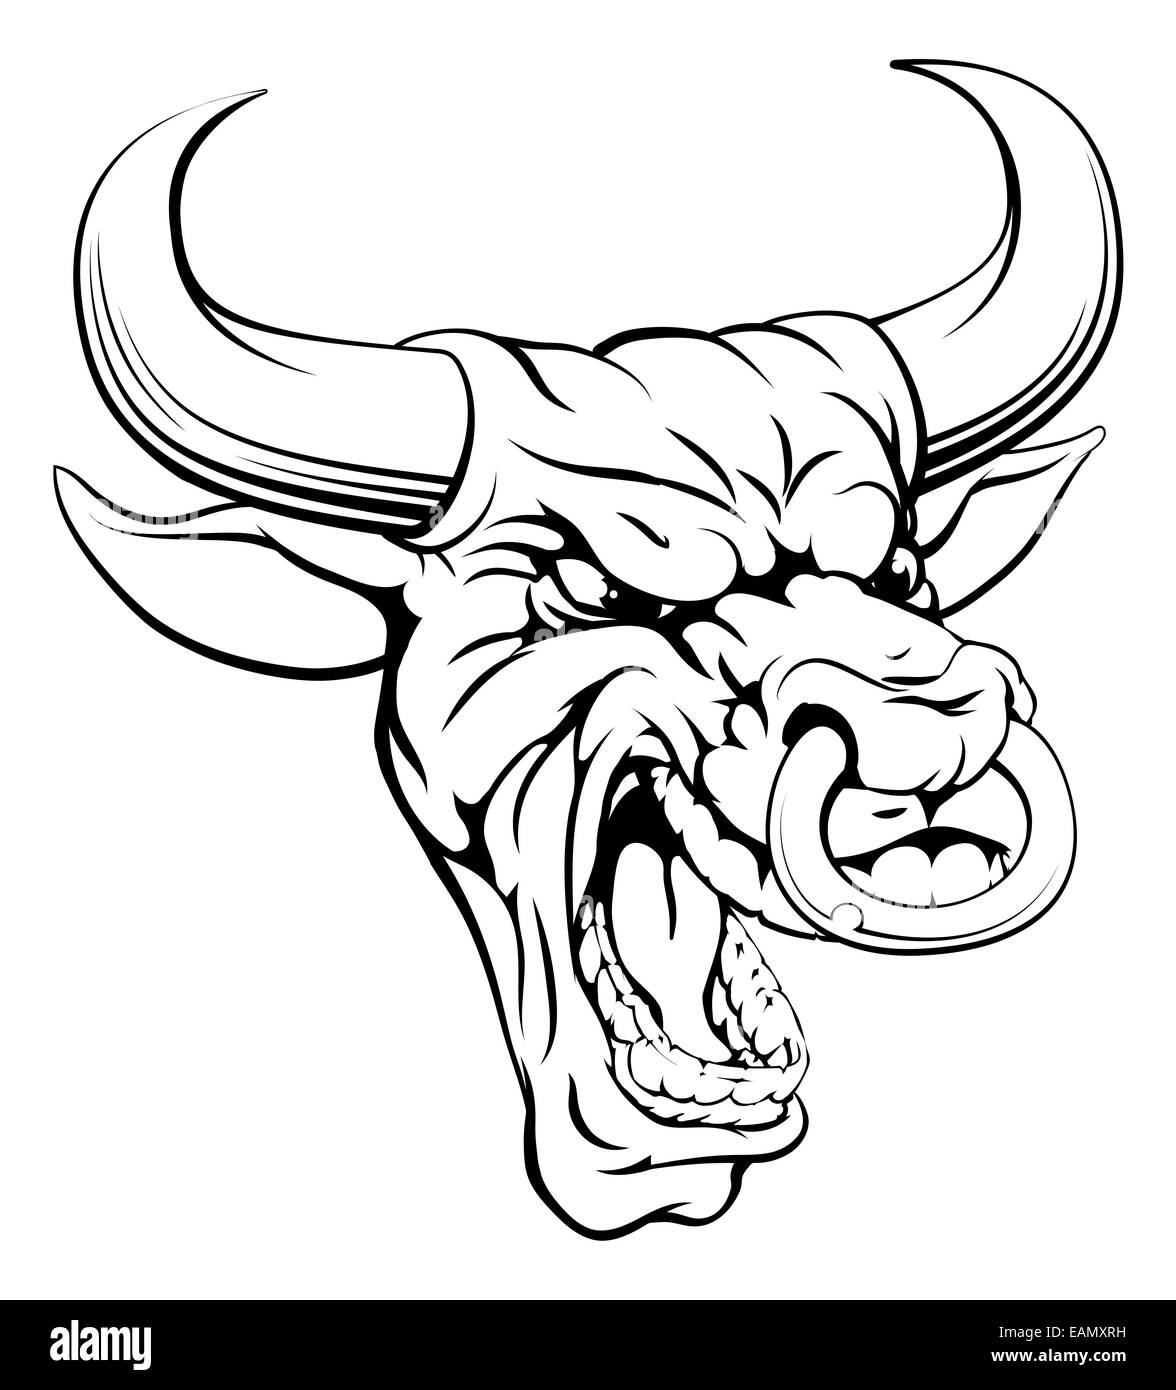 A drawing of a mean angry looking bull mascot face Stock Photo